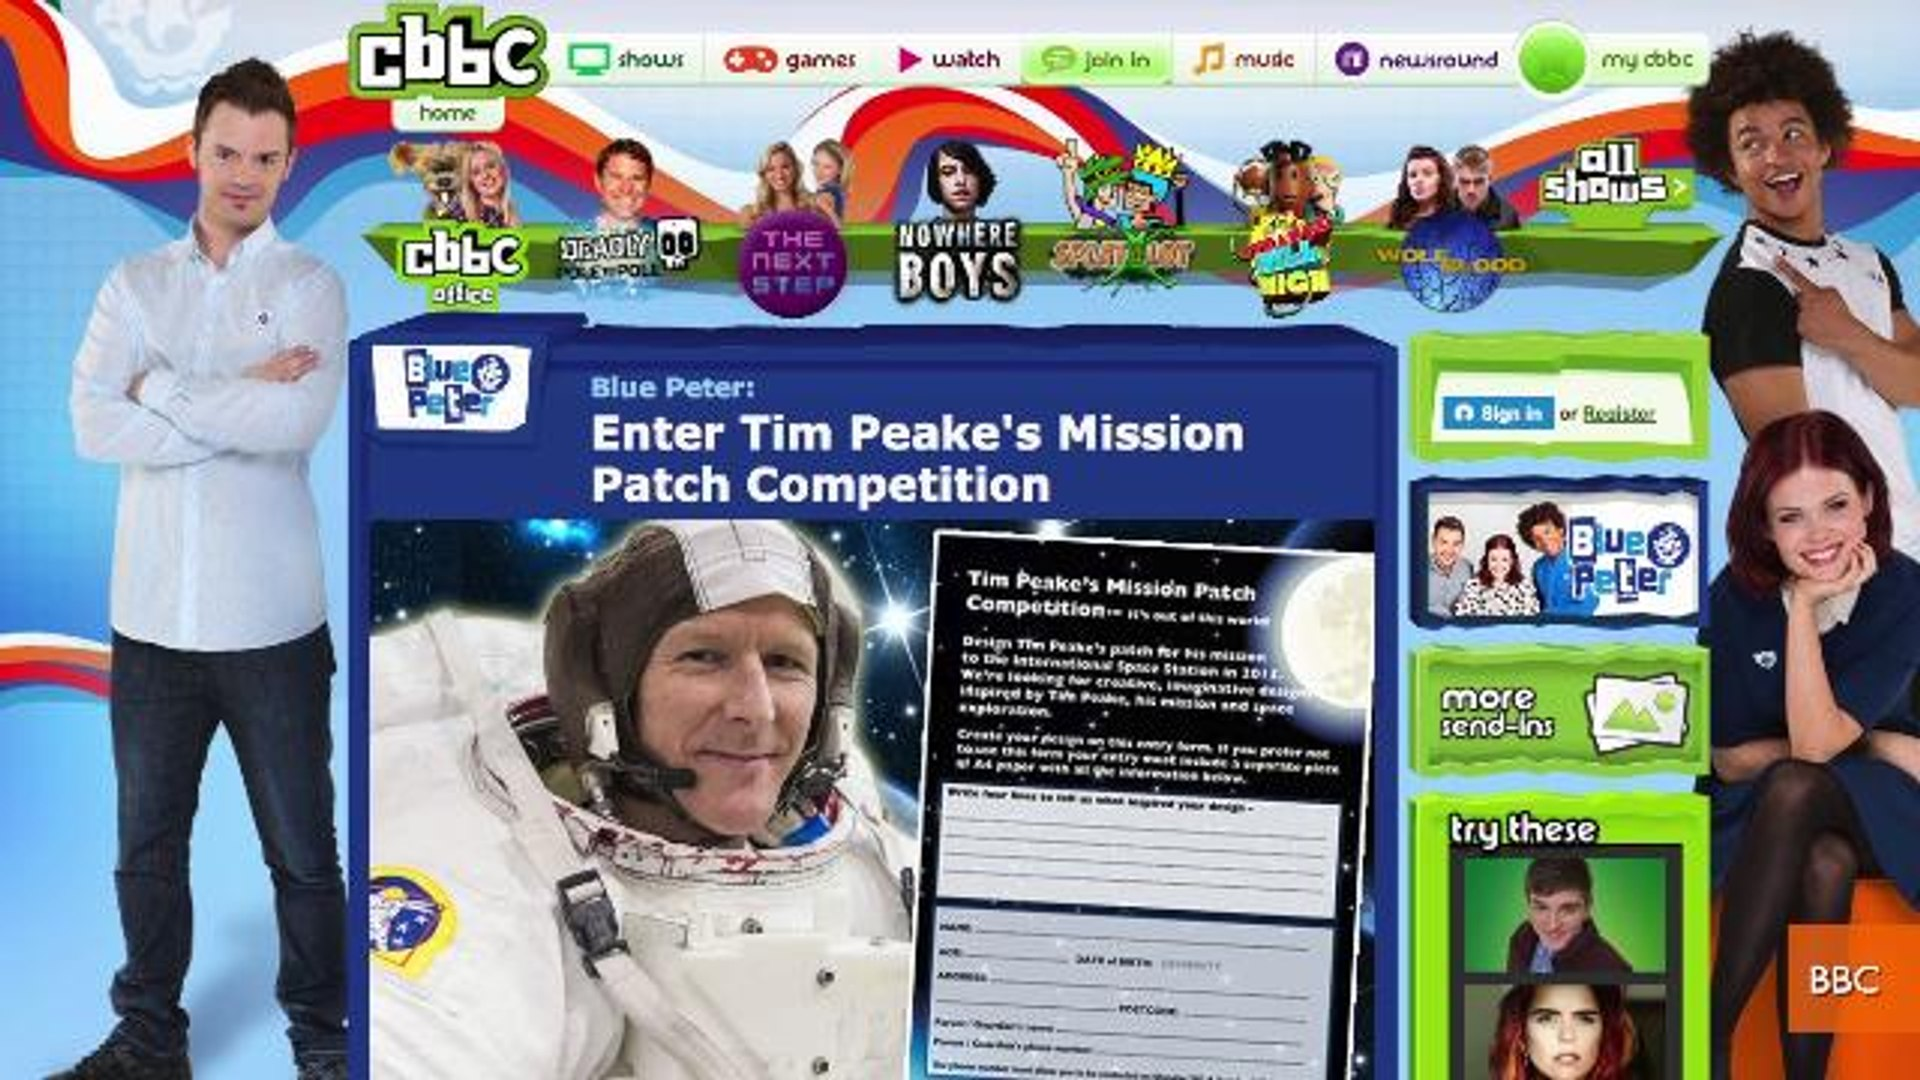 British Television Show Gives Kids A Chance to Design Astronaut's Mission Patch